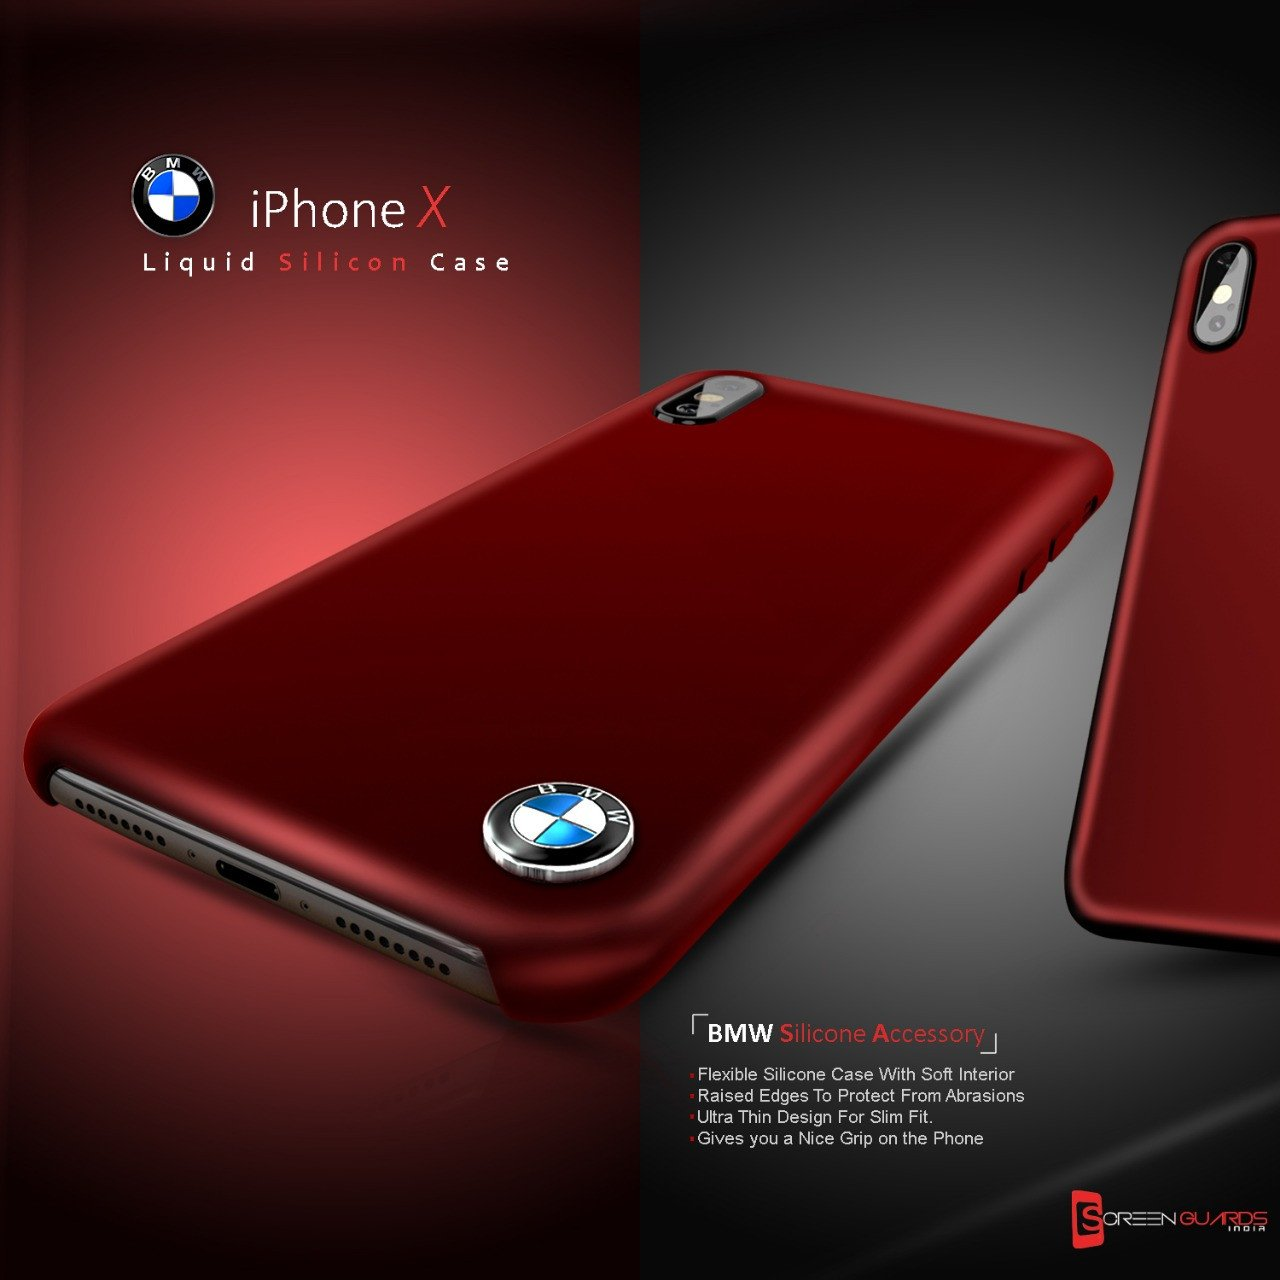 iphone limited edition bmw 174 apple iphone x liquid silicon luxurious limited 5284